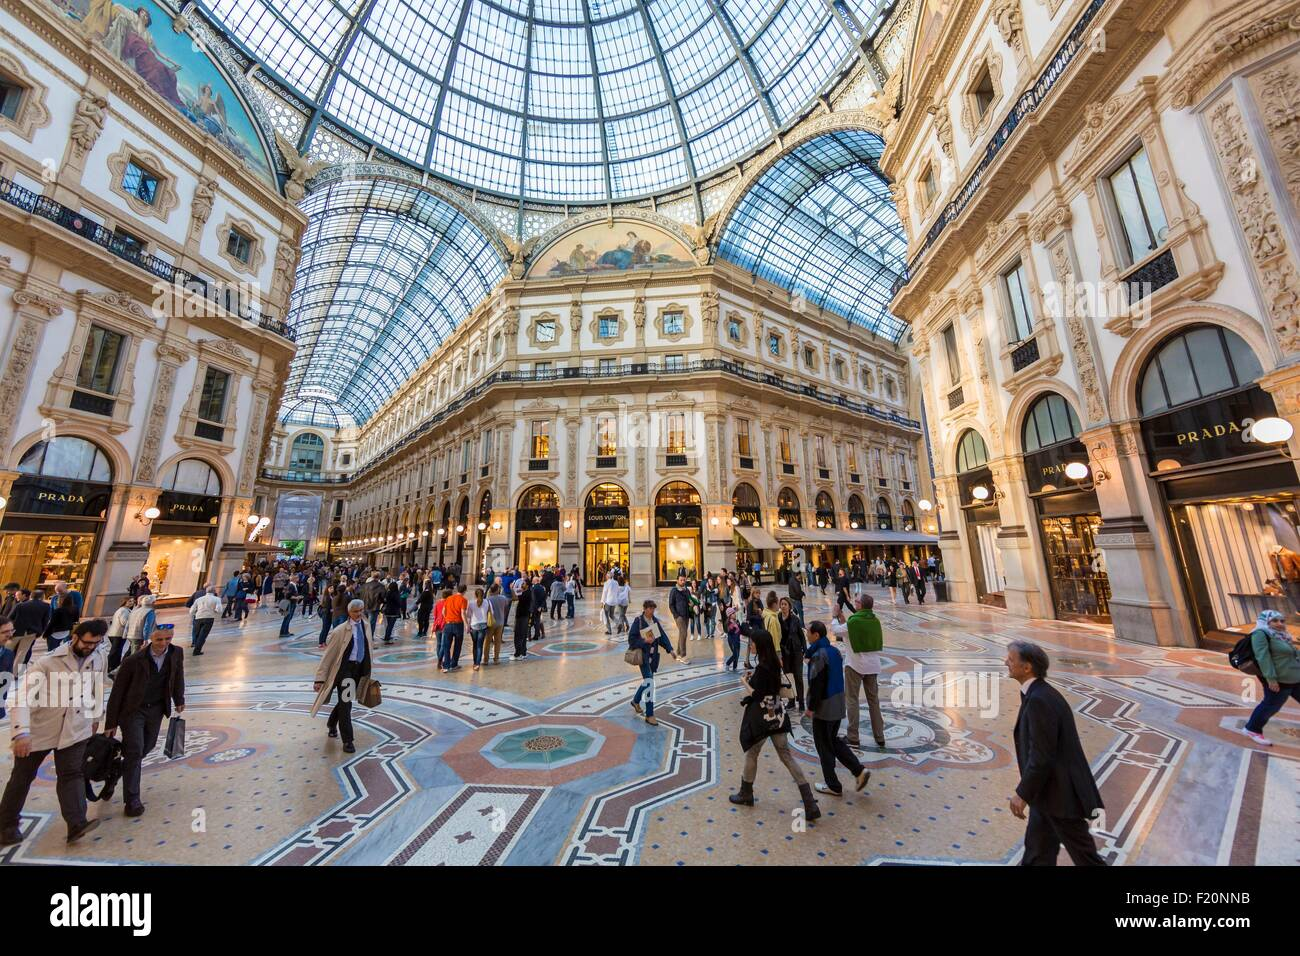 Italy, Lombardy, Milan, Vittorio Emmanuel II Gallery, shopping arcade built on the 19th century by Giuseppe Mengoni - Stock Image